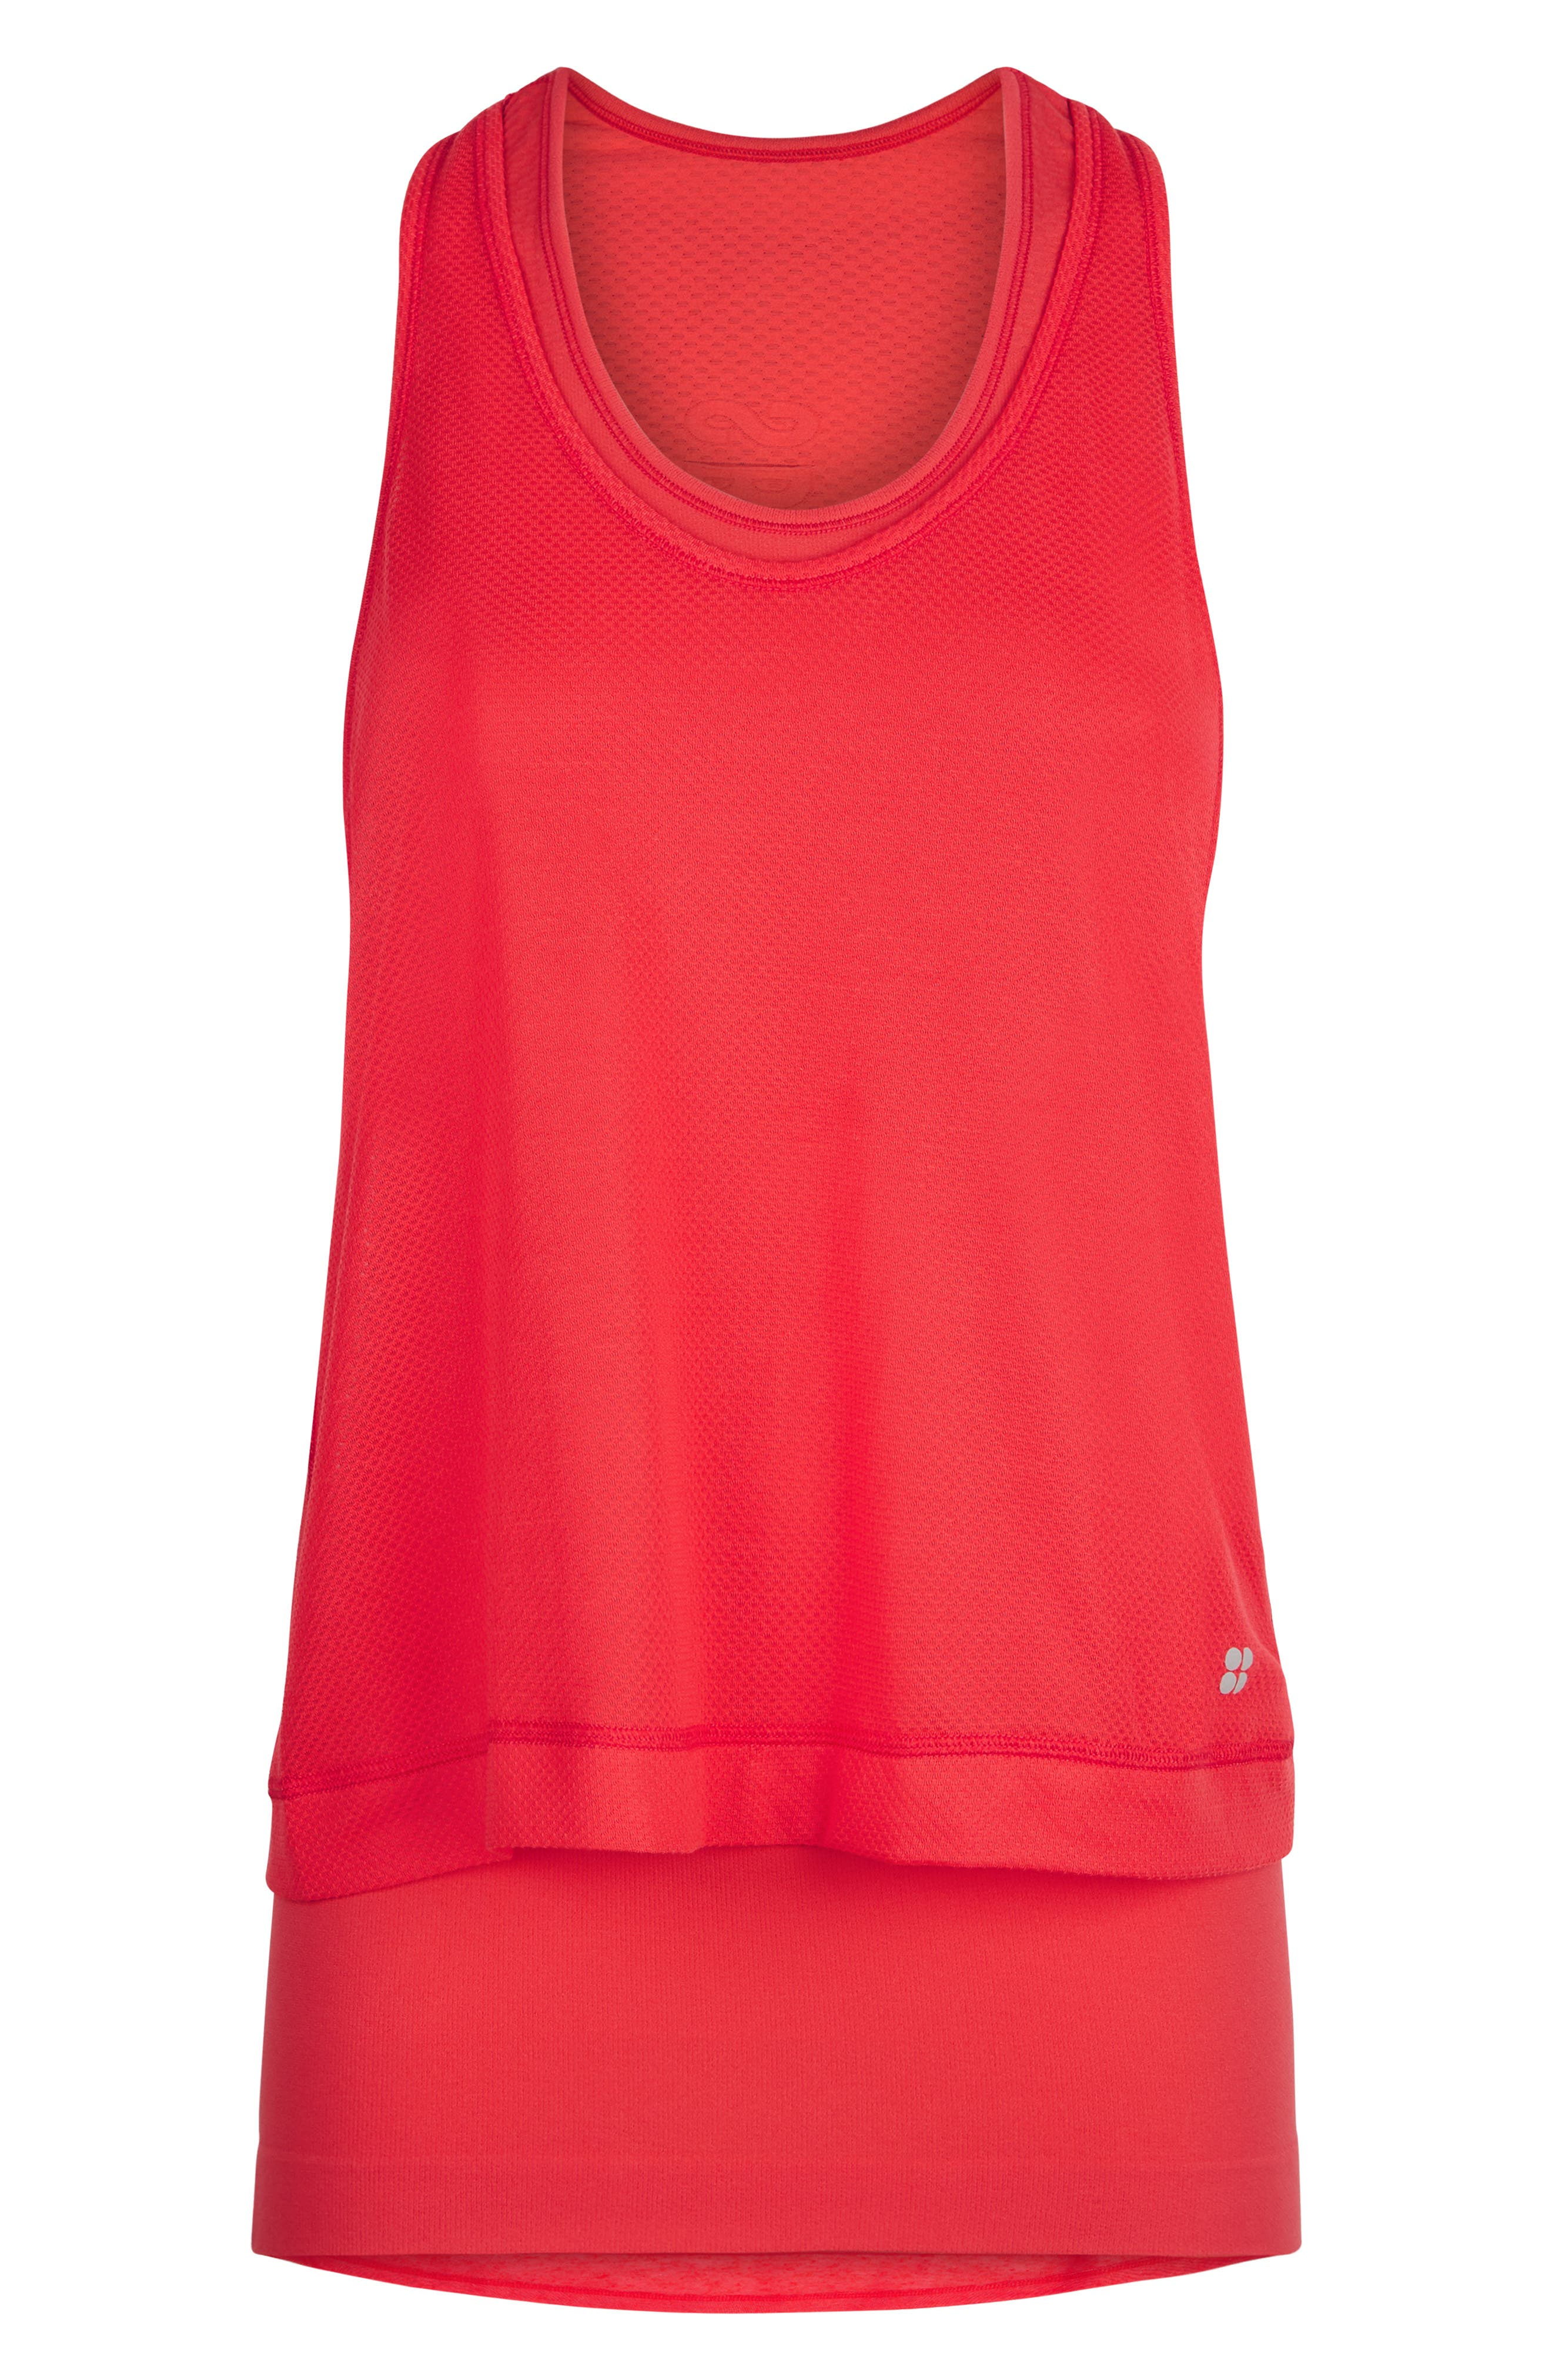 SWEATY BETTY,                             Double Time Seamless Tank,                             Alternate thumbnail 5, color,                             TULIP RED